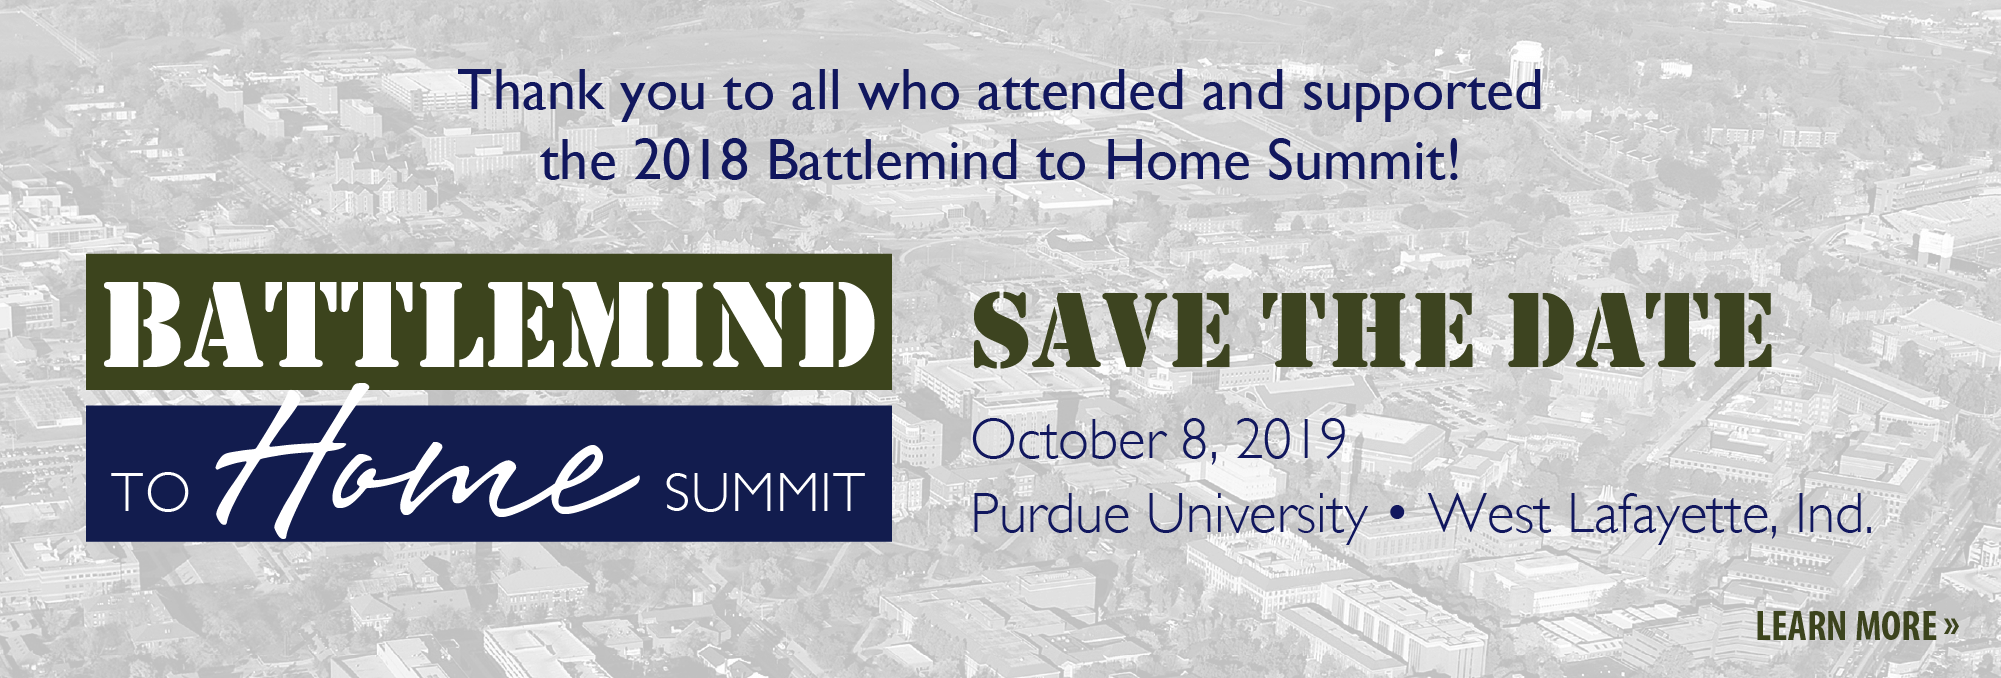 Thank you to all who attended and supported the 2018 Battlemind to Home Summit! Save the Date October 9, 2018 at Purdue University in West Lafayette, Indiana